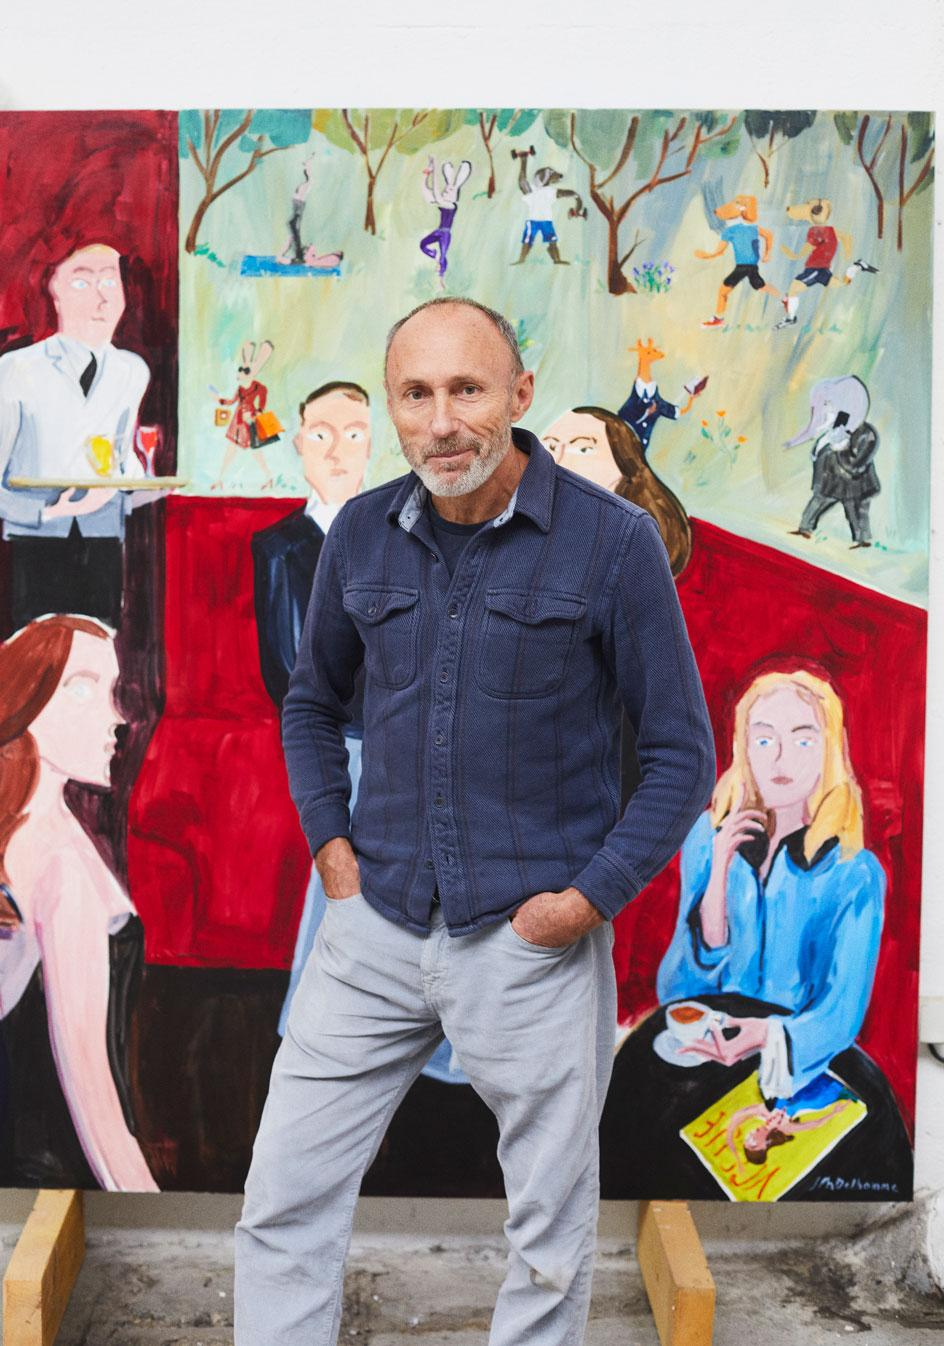 Jean-Philippe Delhomme stands in front of the other of his two murals forCarlyle & Co., titledYou, the Night, and the Music in the French artist's Paris studio